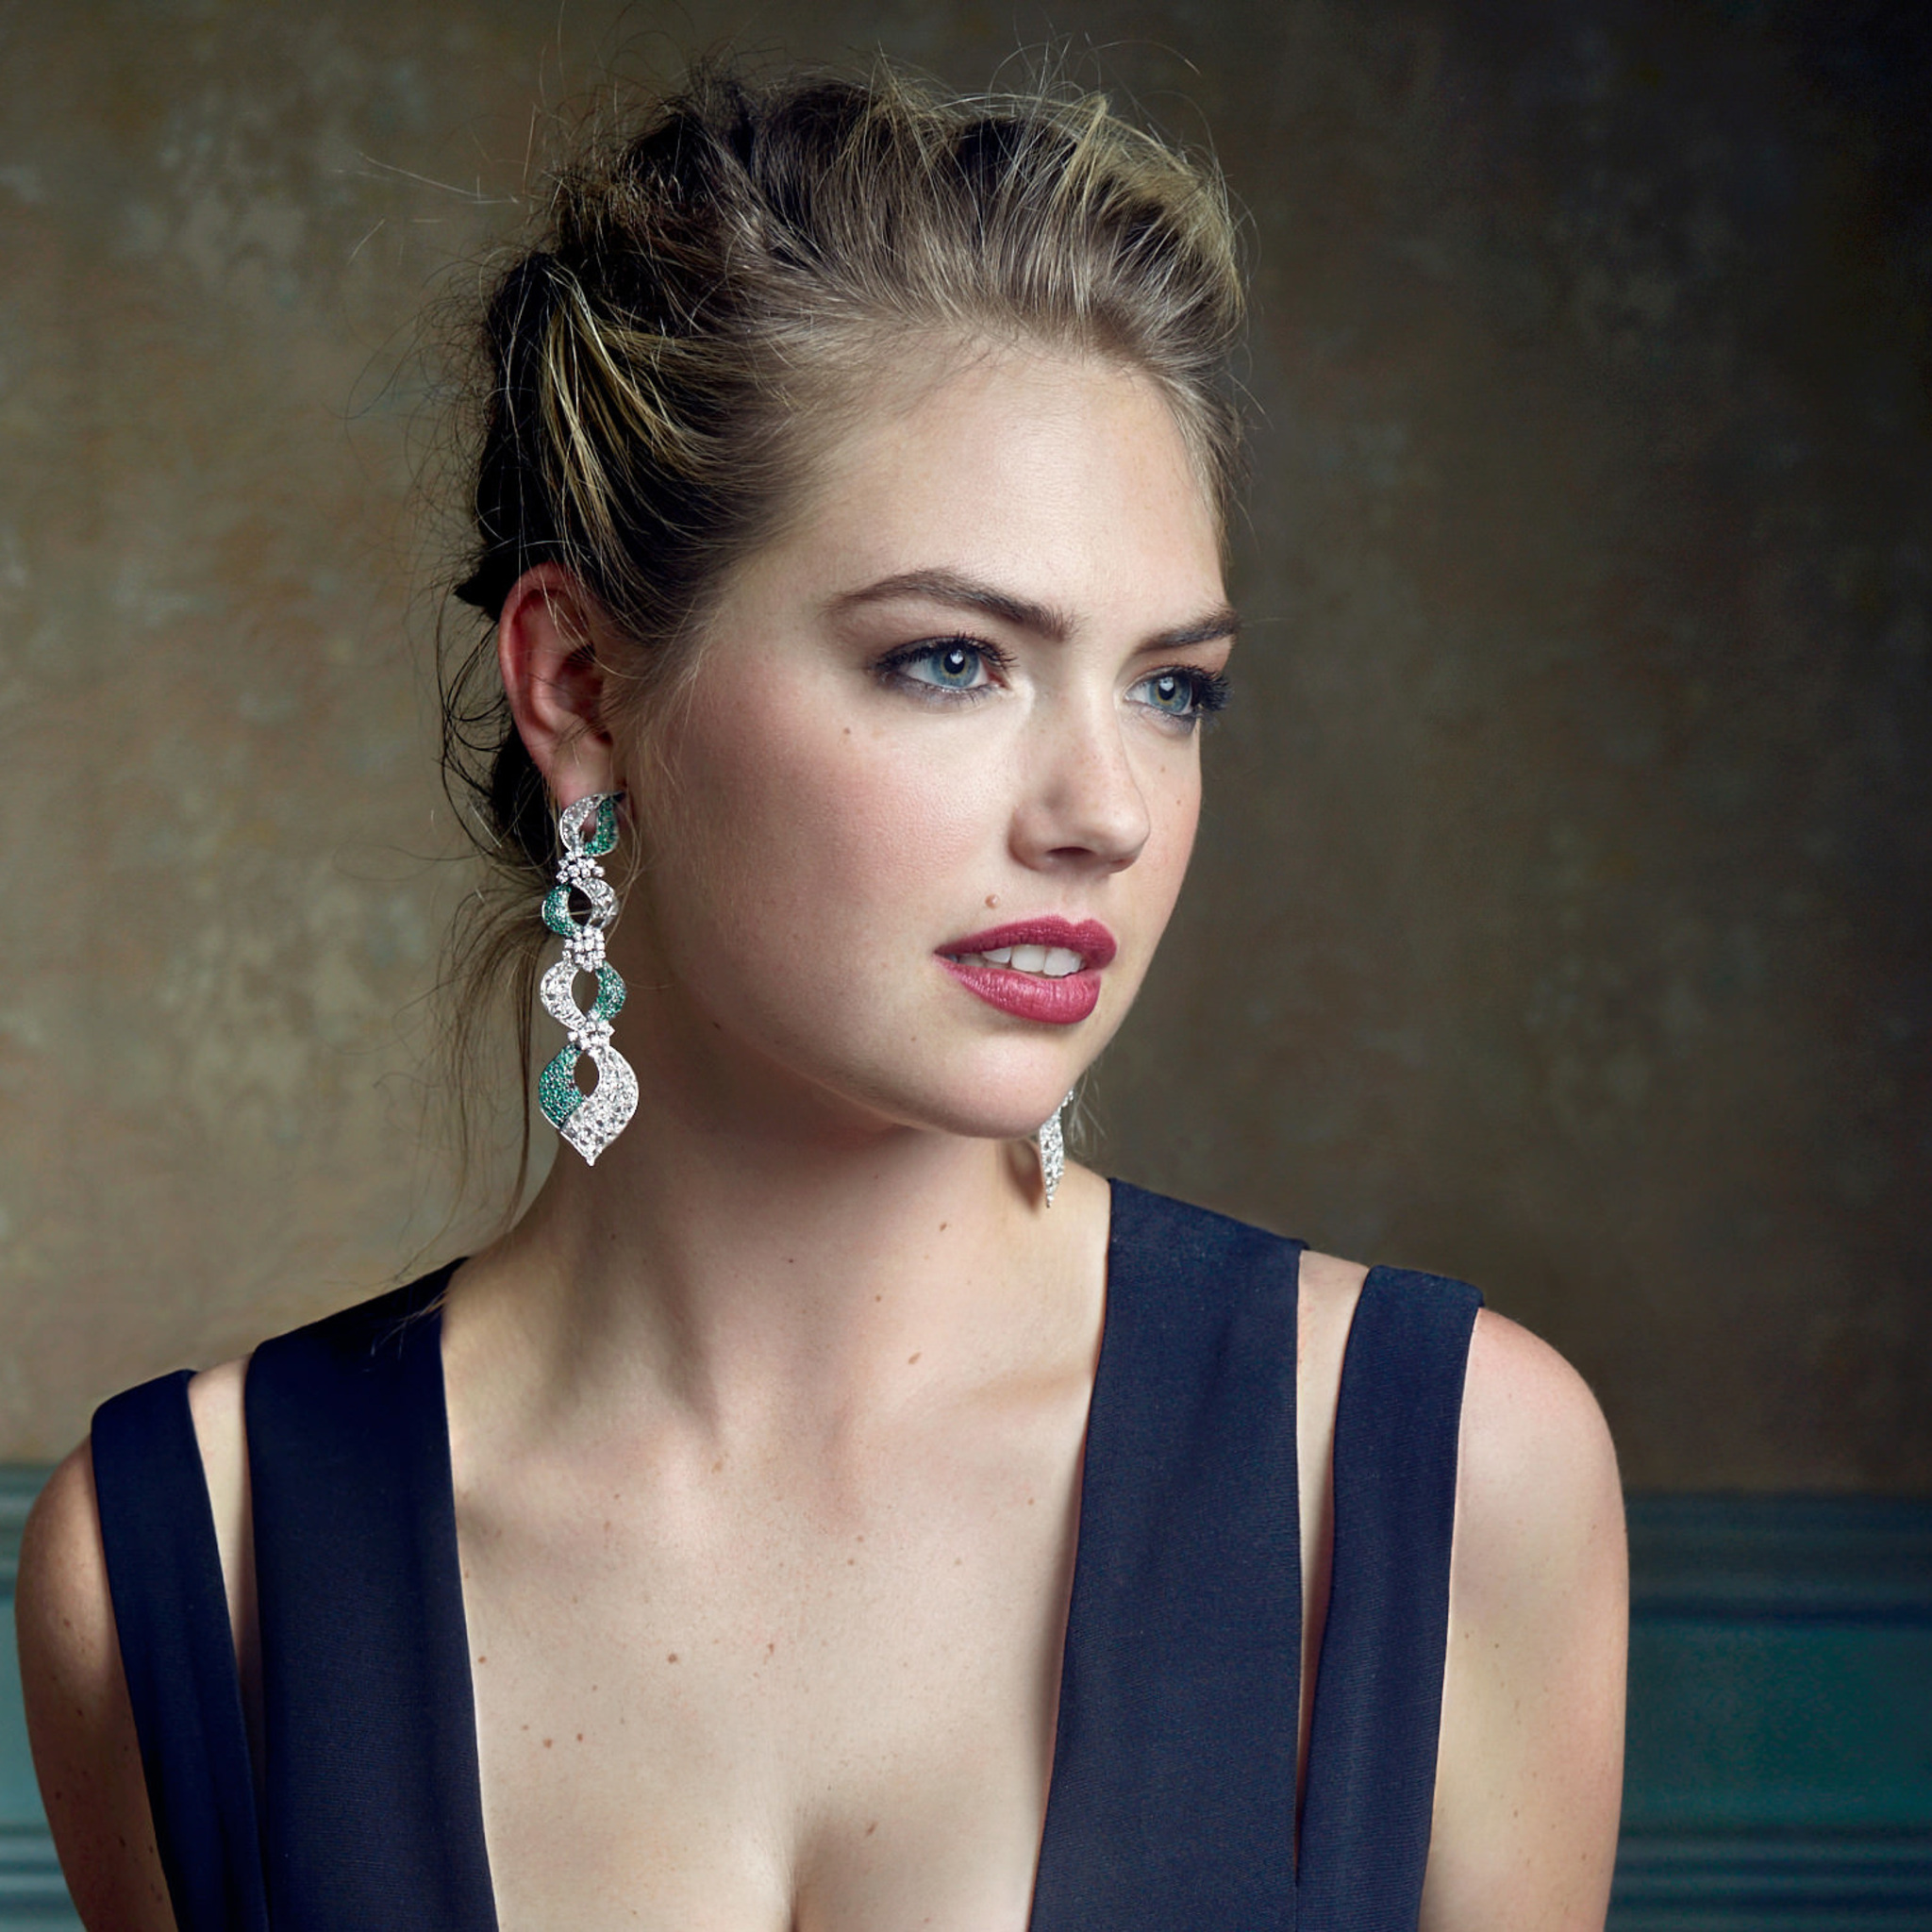 2048x2048 kate upton 2018 ipad air hd 4k wallpapers, images